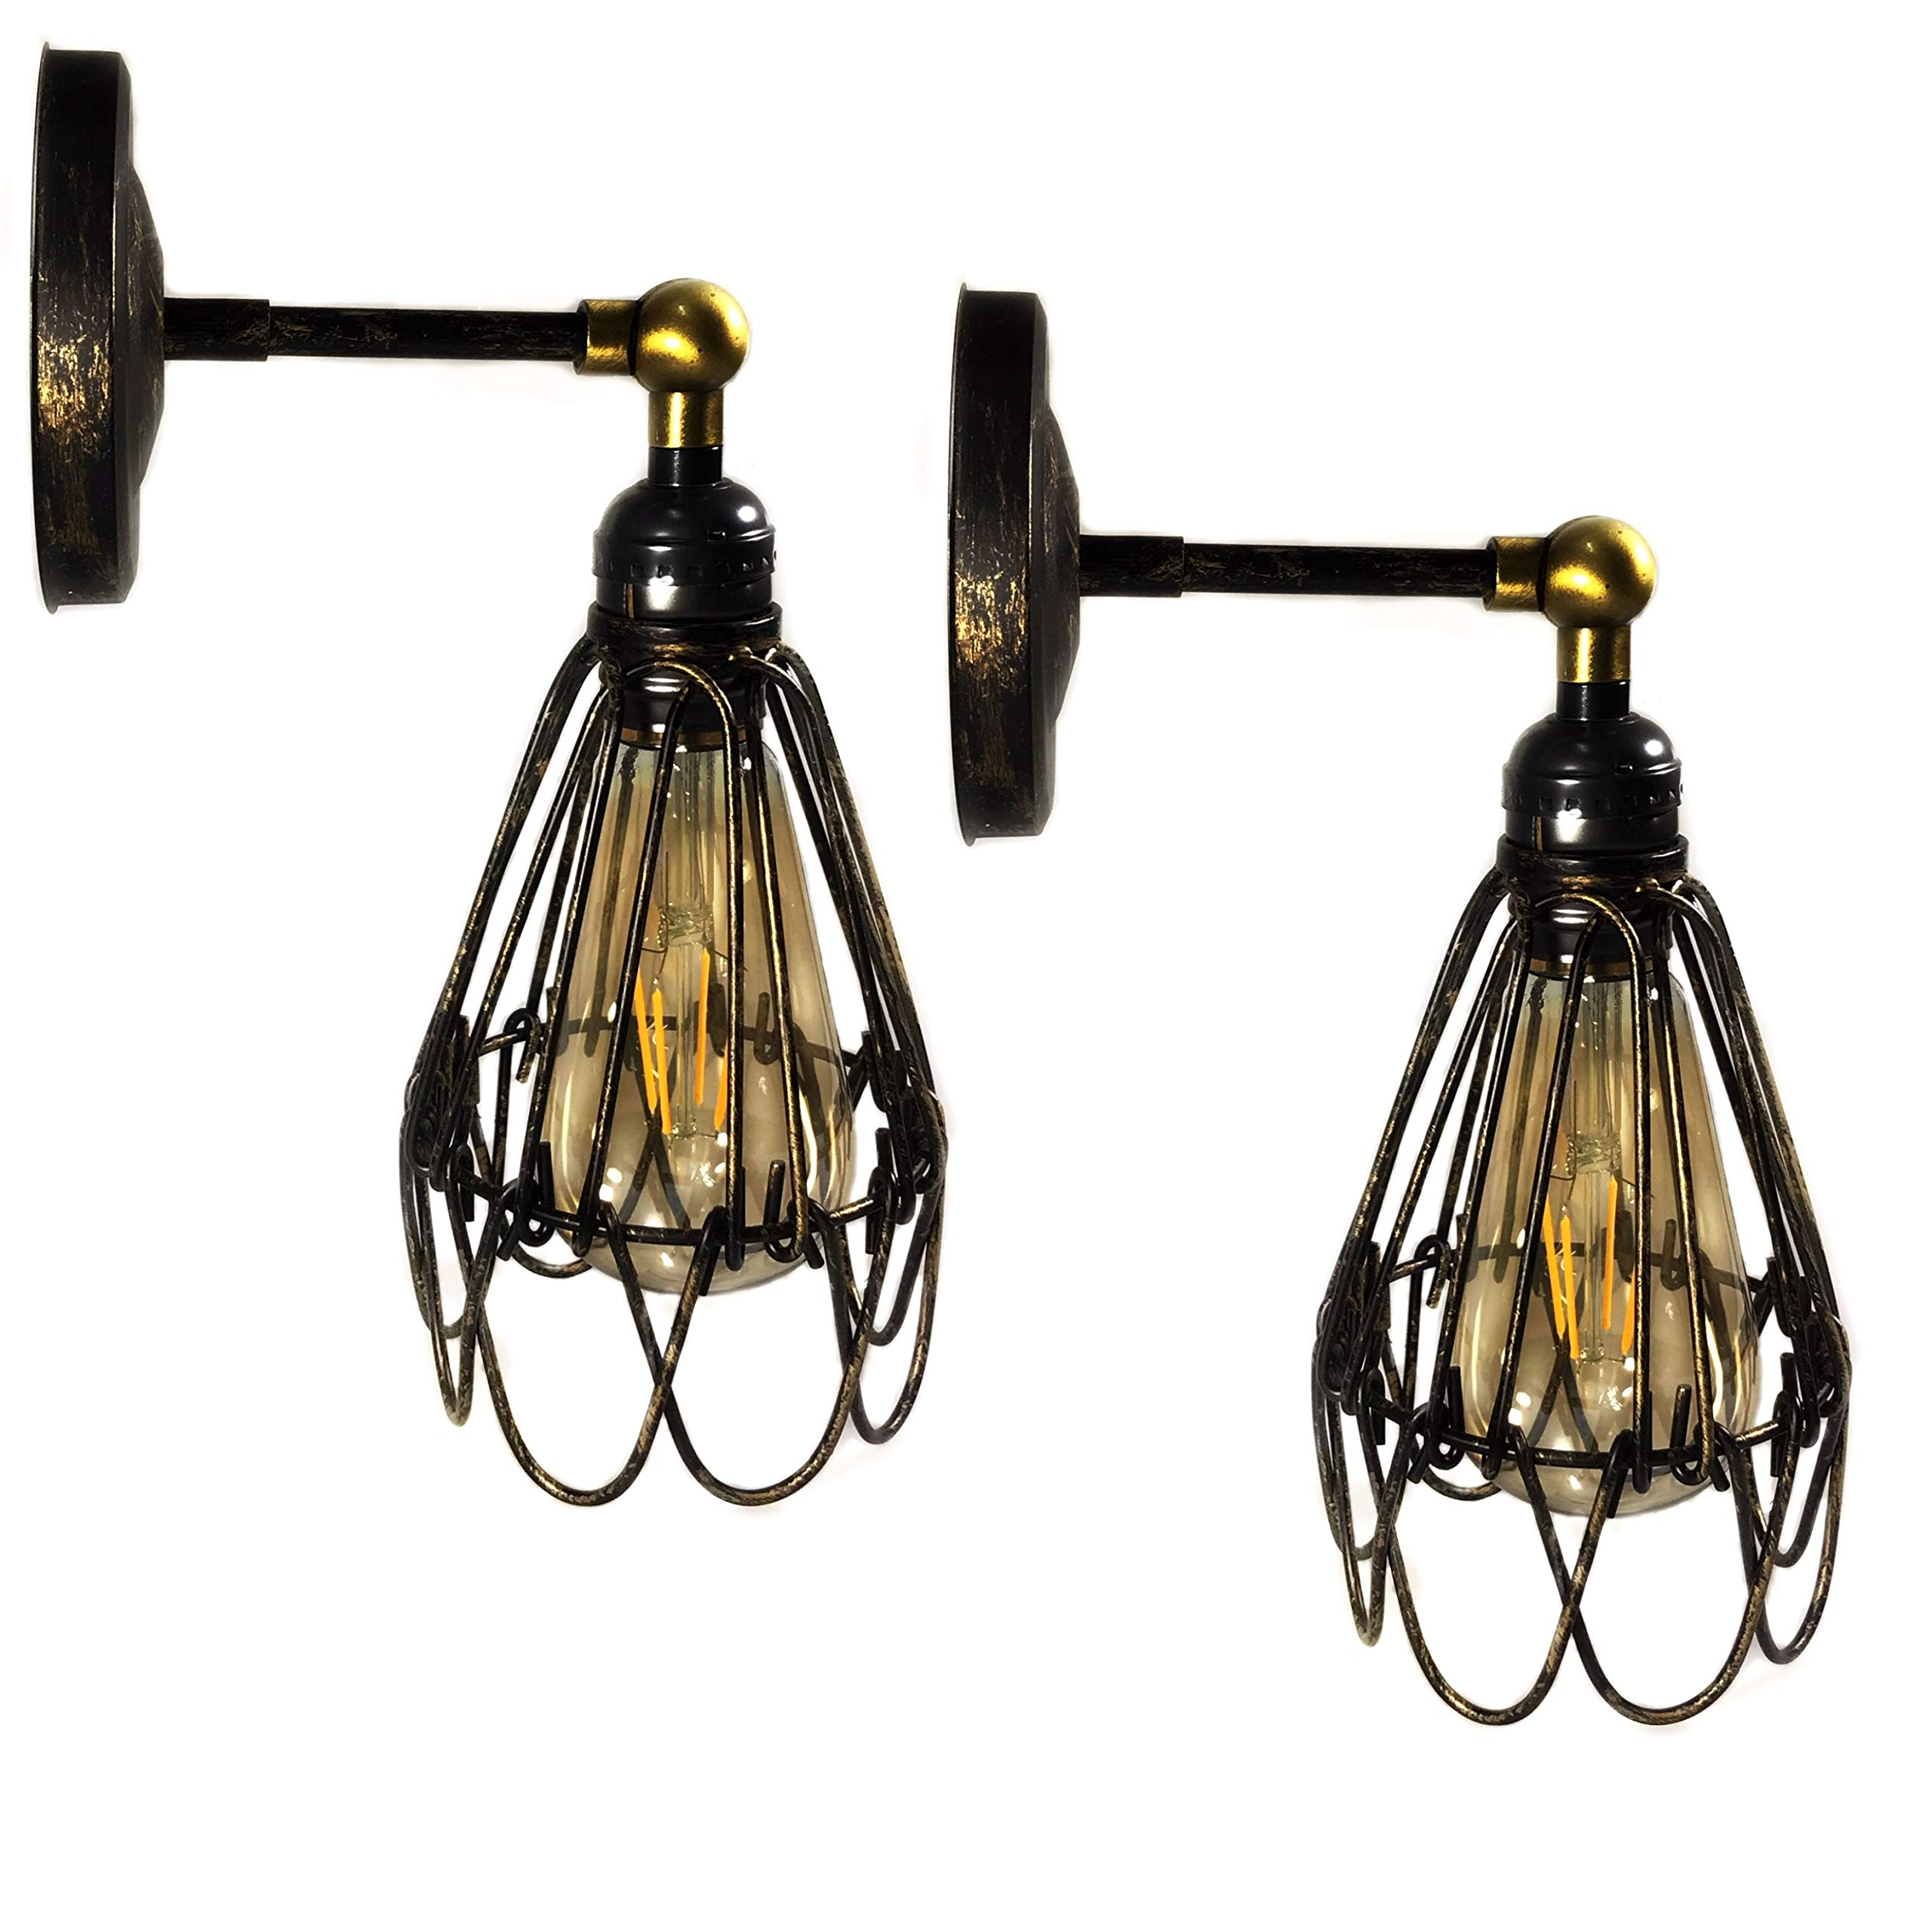 Retro Wall Sconce Vintage Wall Lamps, Adjustable Industrial Rustic Wire Cage Wall Light Antique Style Indoor Lighting Fixture (2 PACK)